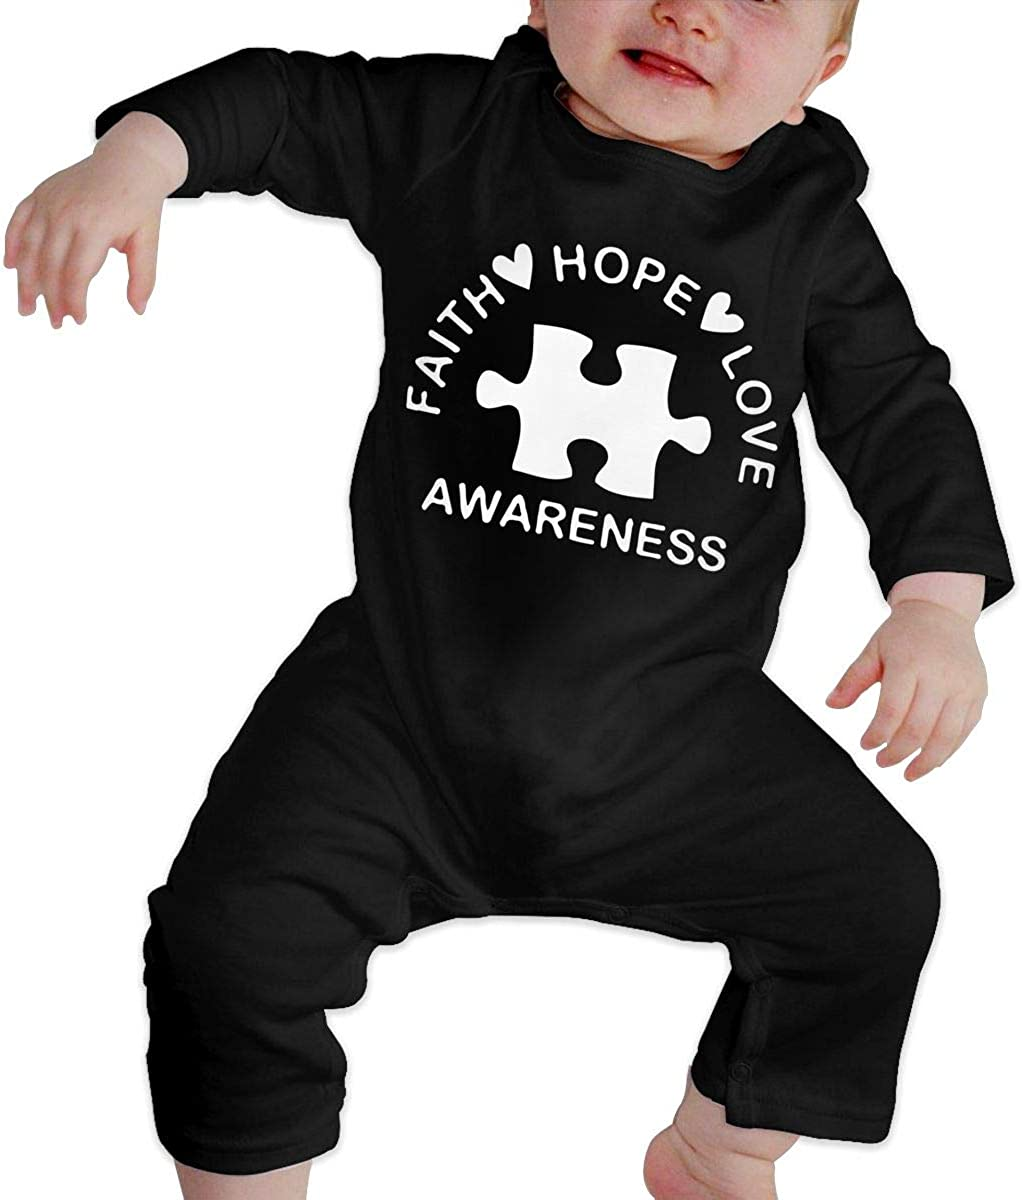 Faith Hope Love Awareness-1 Organic One-Piece Kid Pajamas Clothes Toddler Baby Boy Romper Jumpsuit